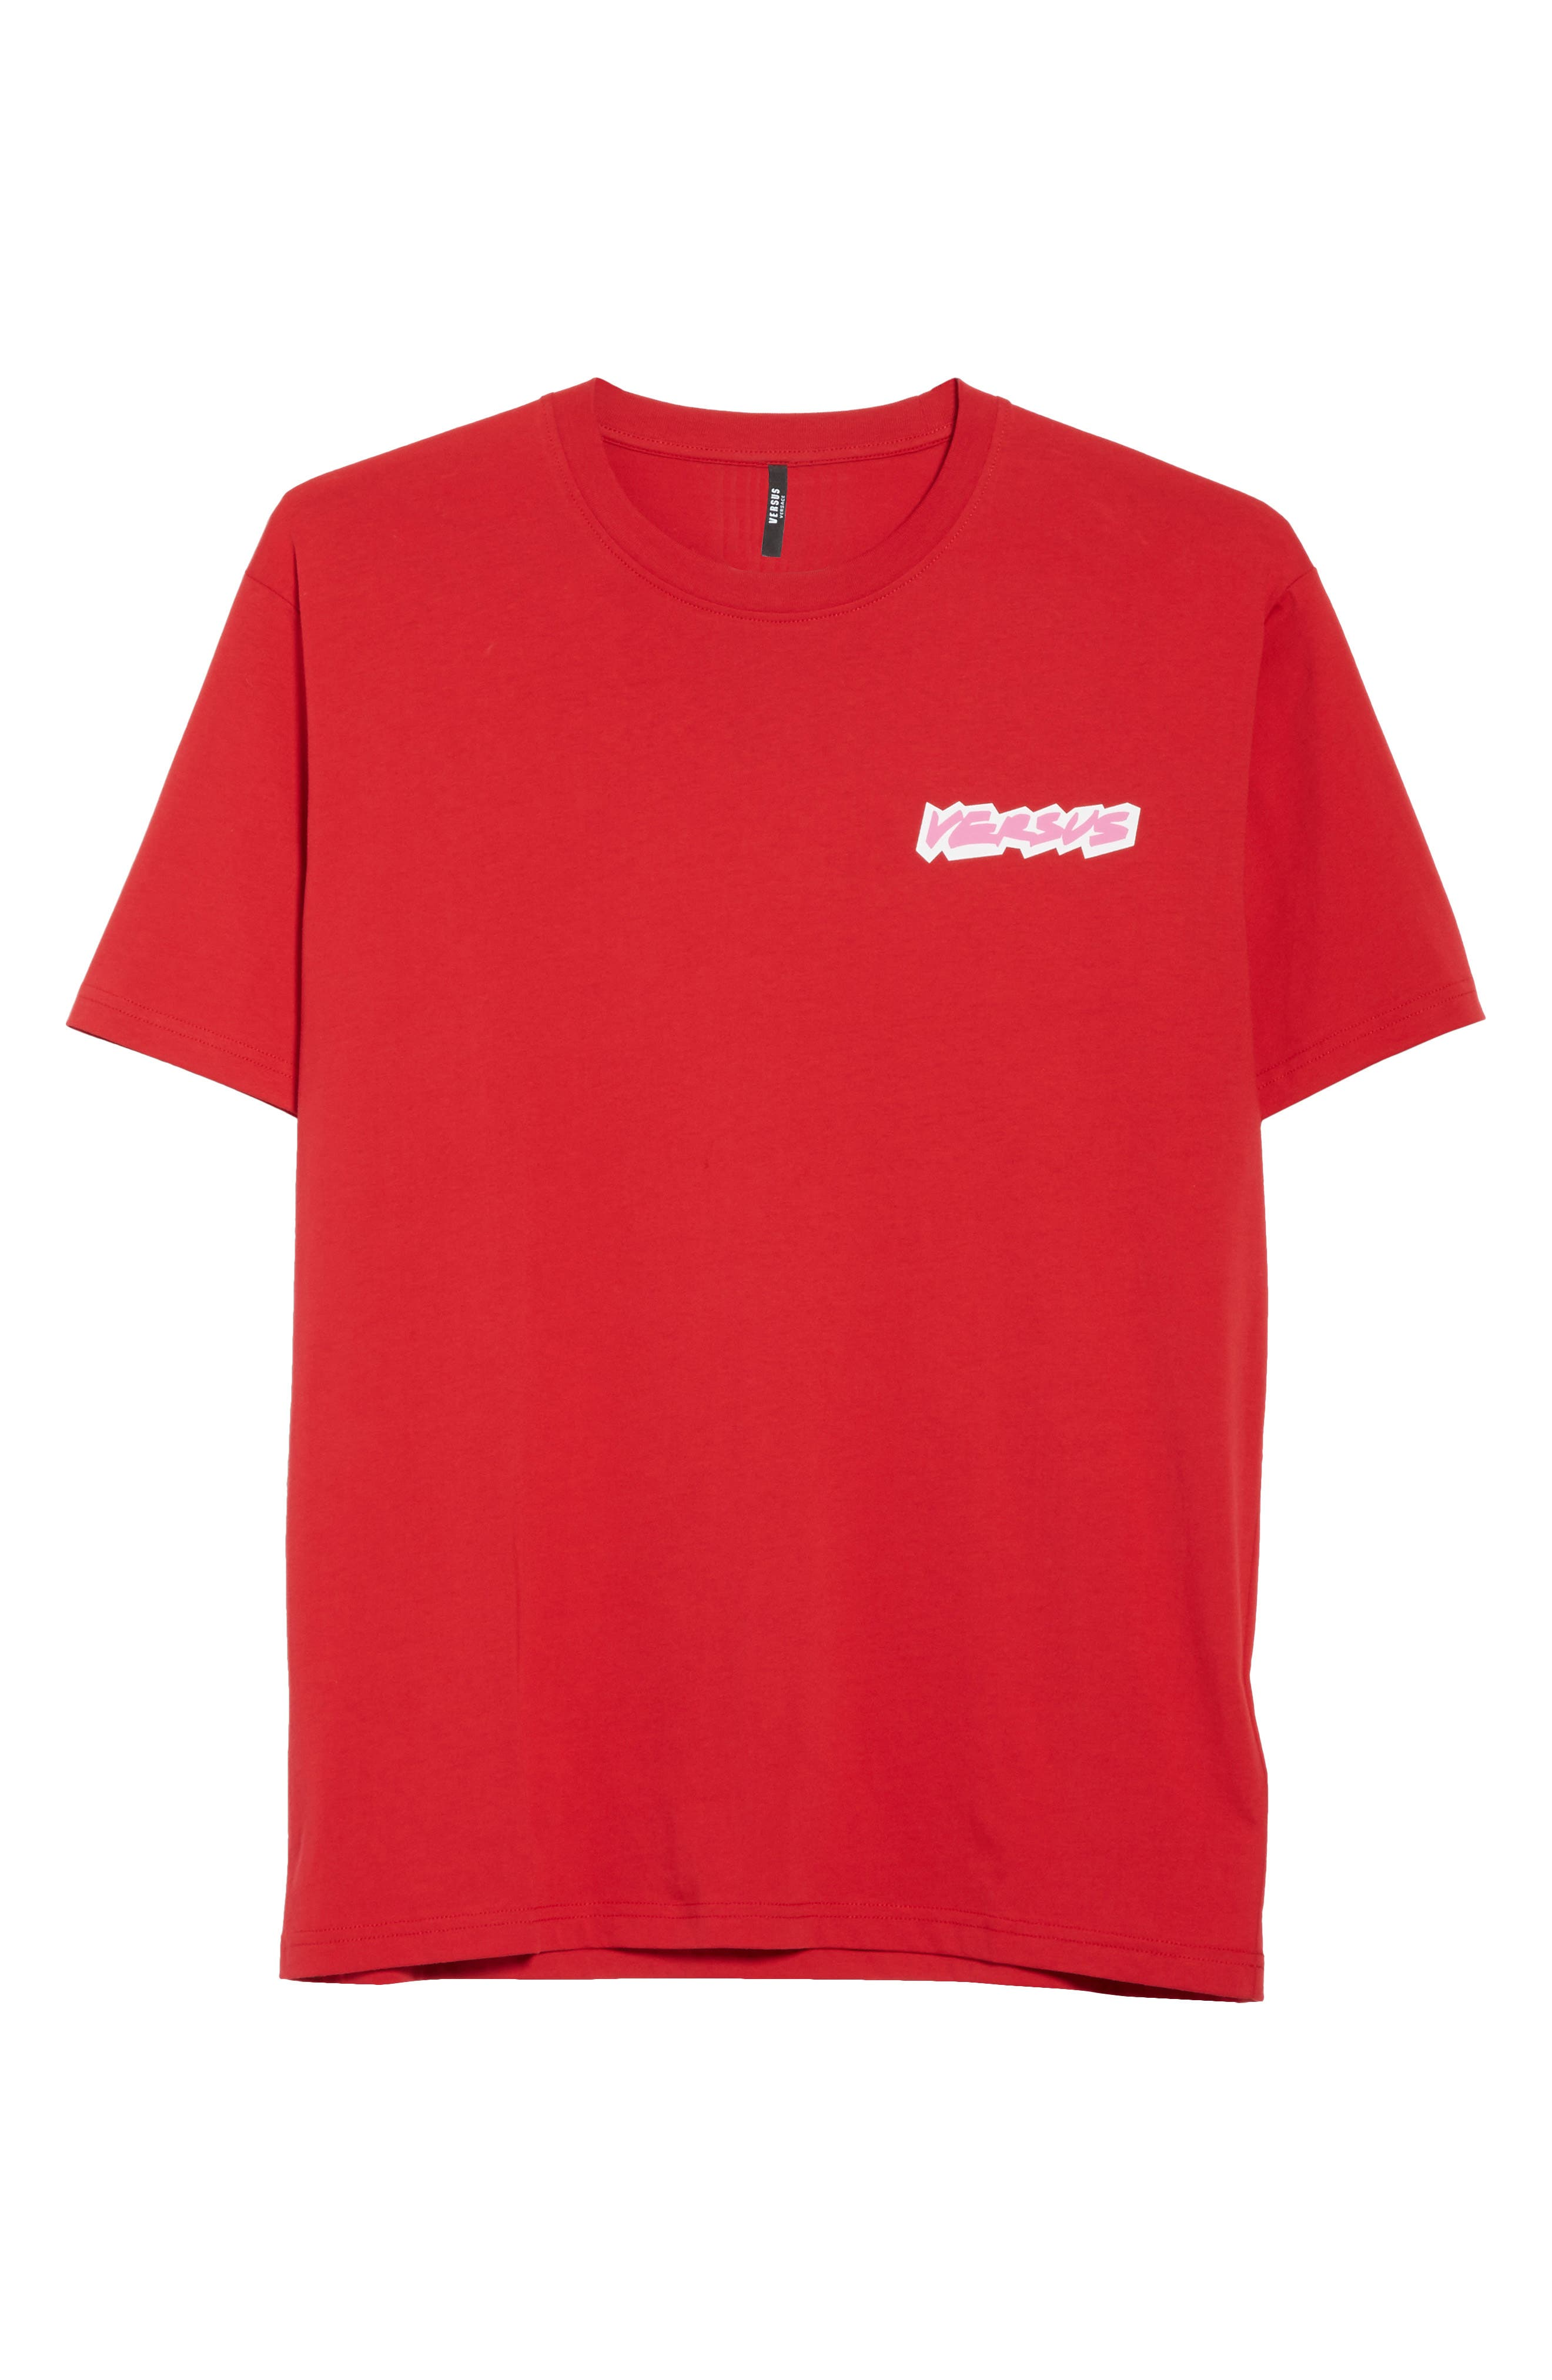 VERSUS by Versace Logo Graphic T-Shirt,                             Main thumbnail 1, color,                             Red